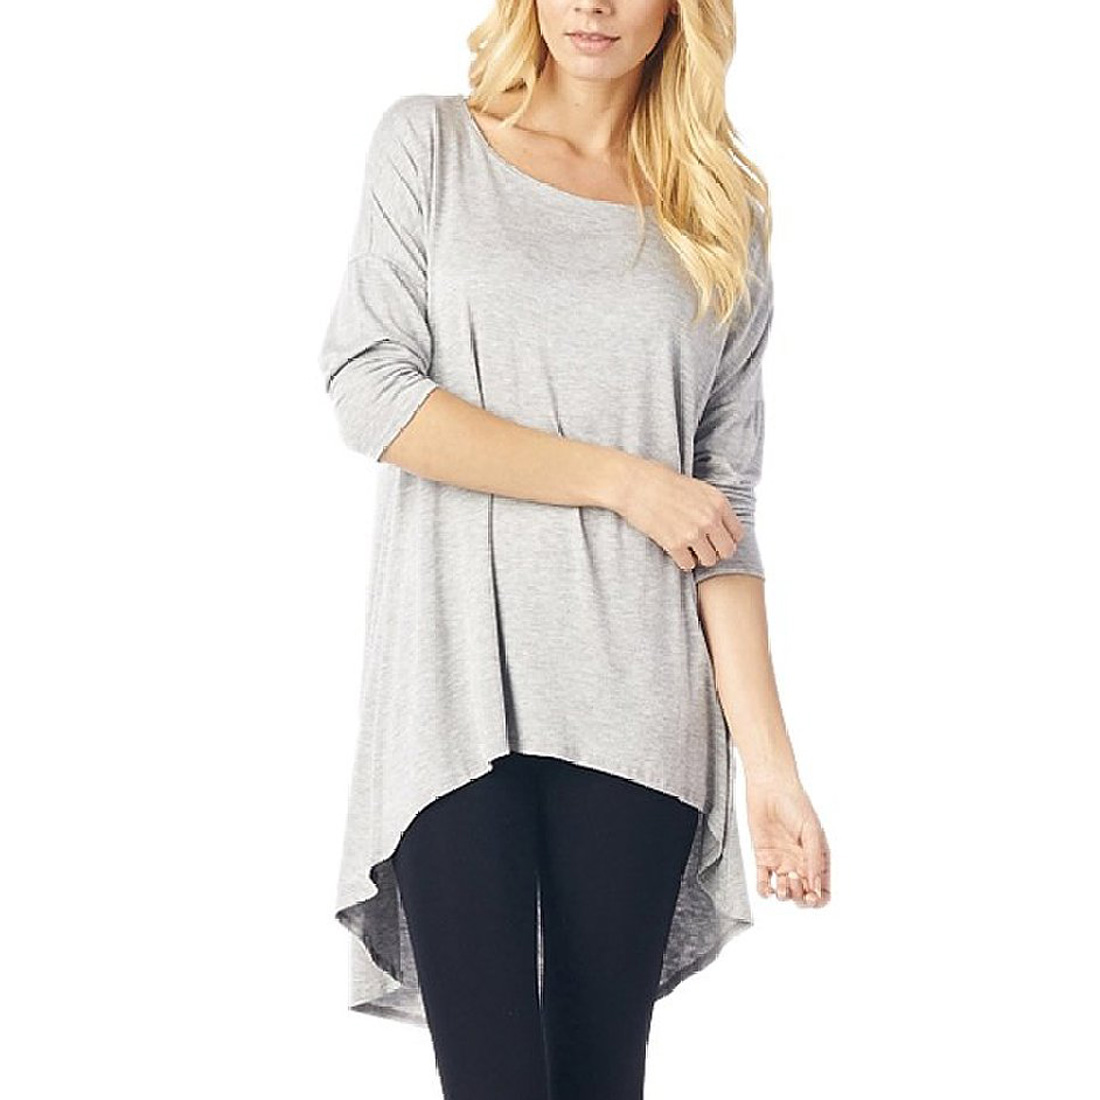 Womens Tunic Blouse Top Casual Sheer Shirts Tank Tops